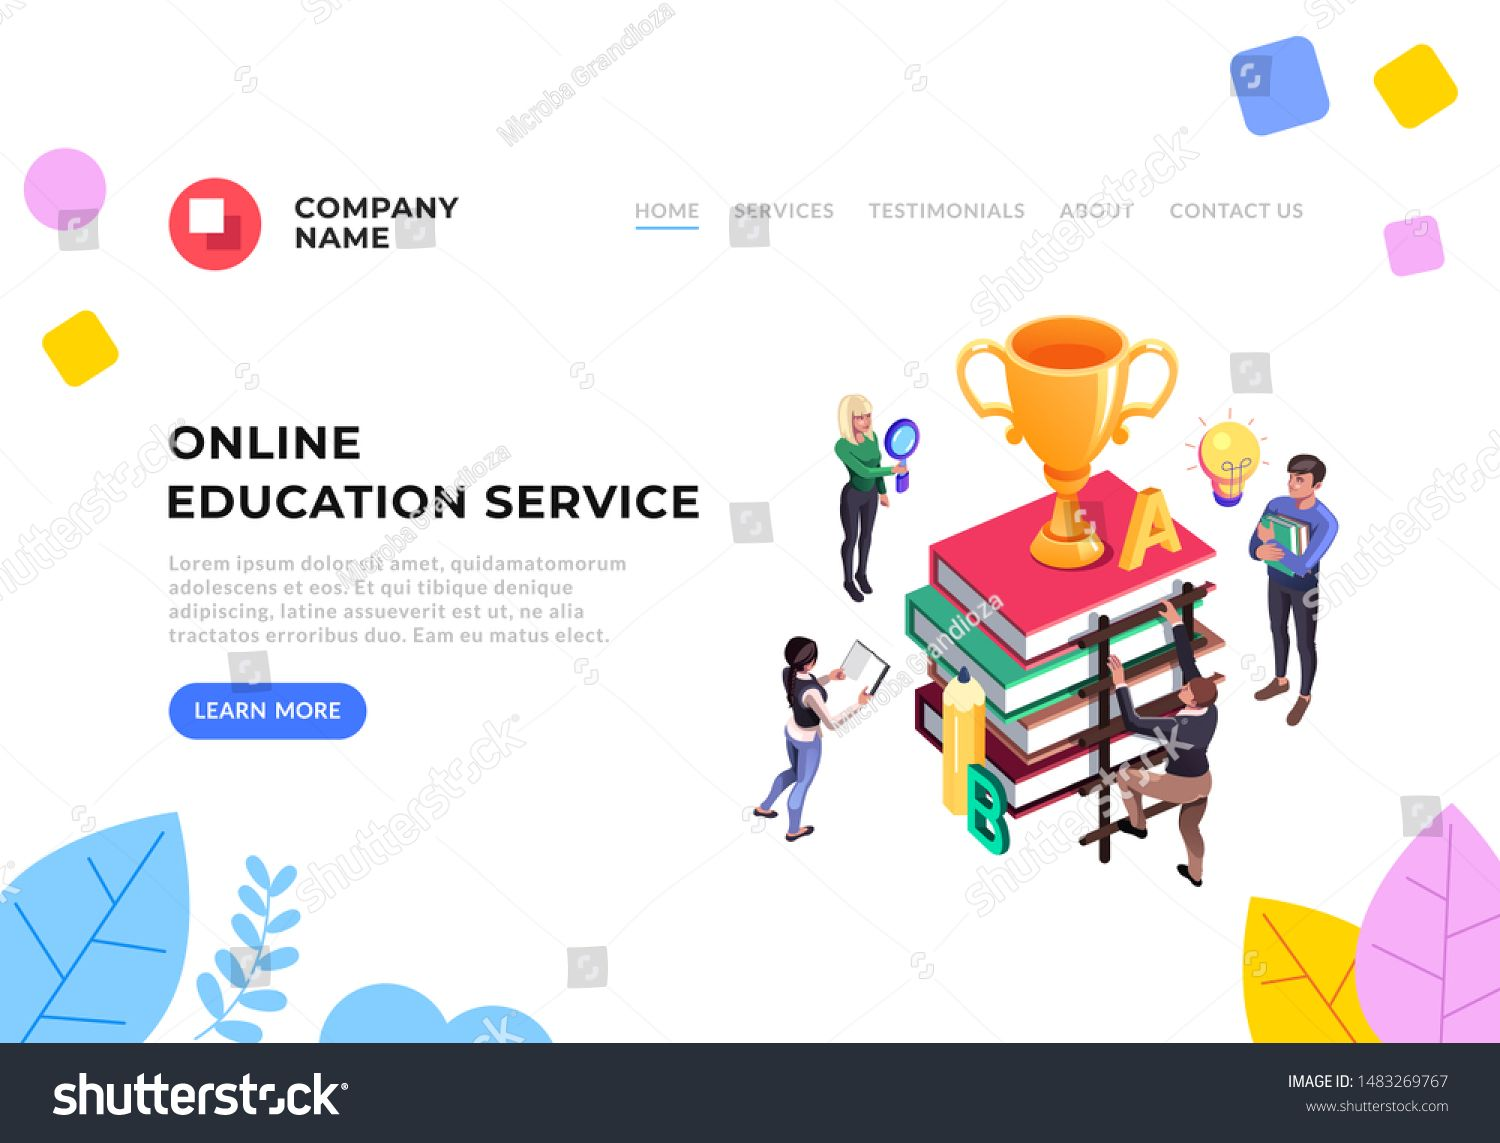 Online Education Tutorials Service Flat Graphic Design Banner Poster Vector Concept Illustration Ad Aff Service Online Education Education Creative Words